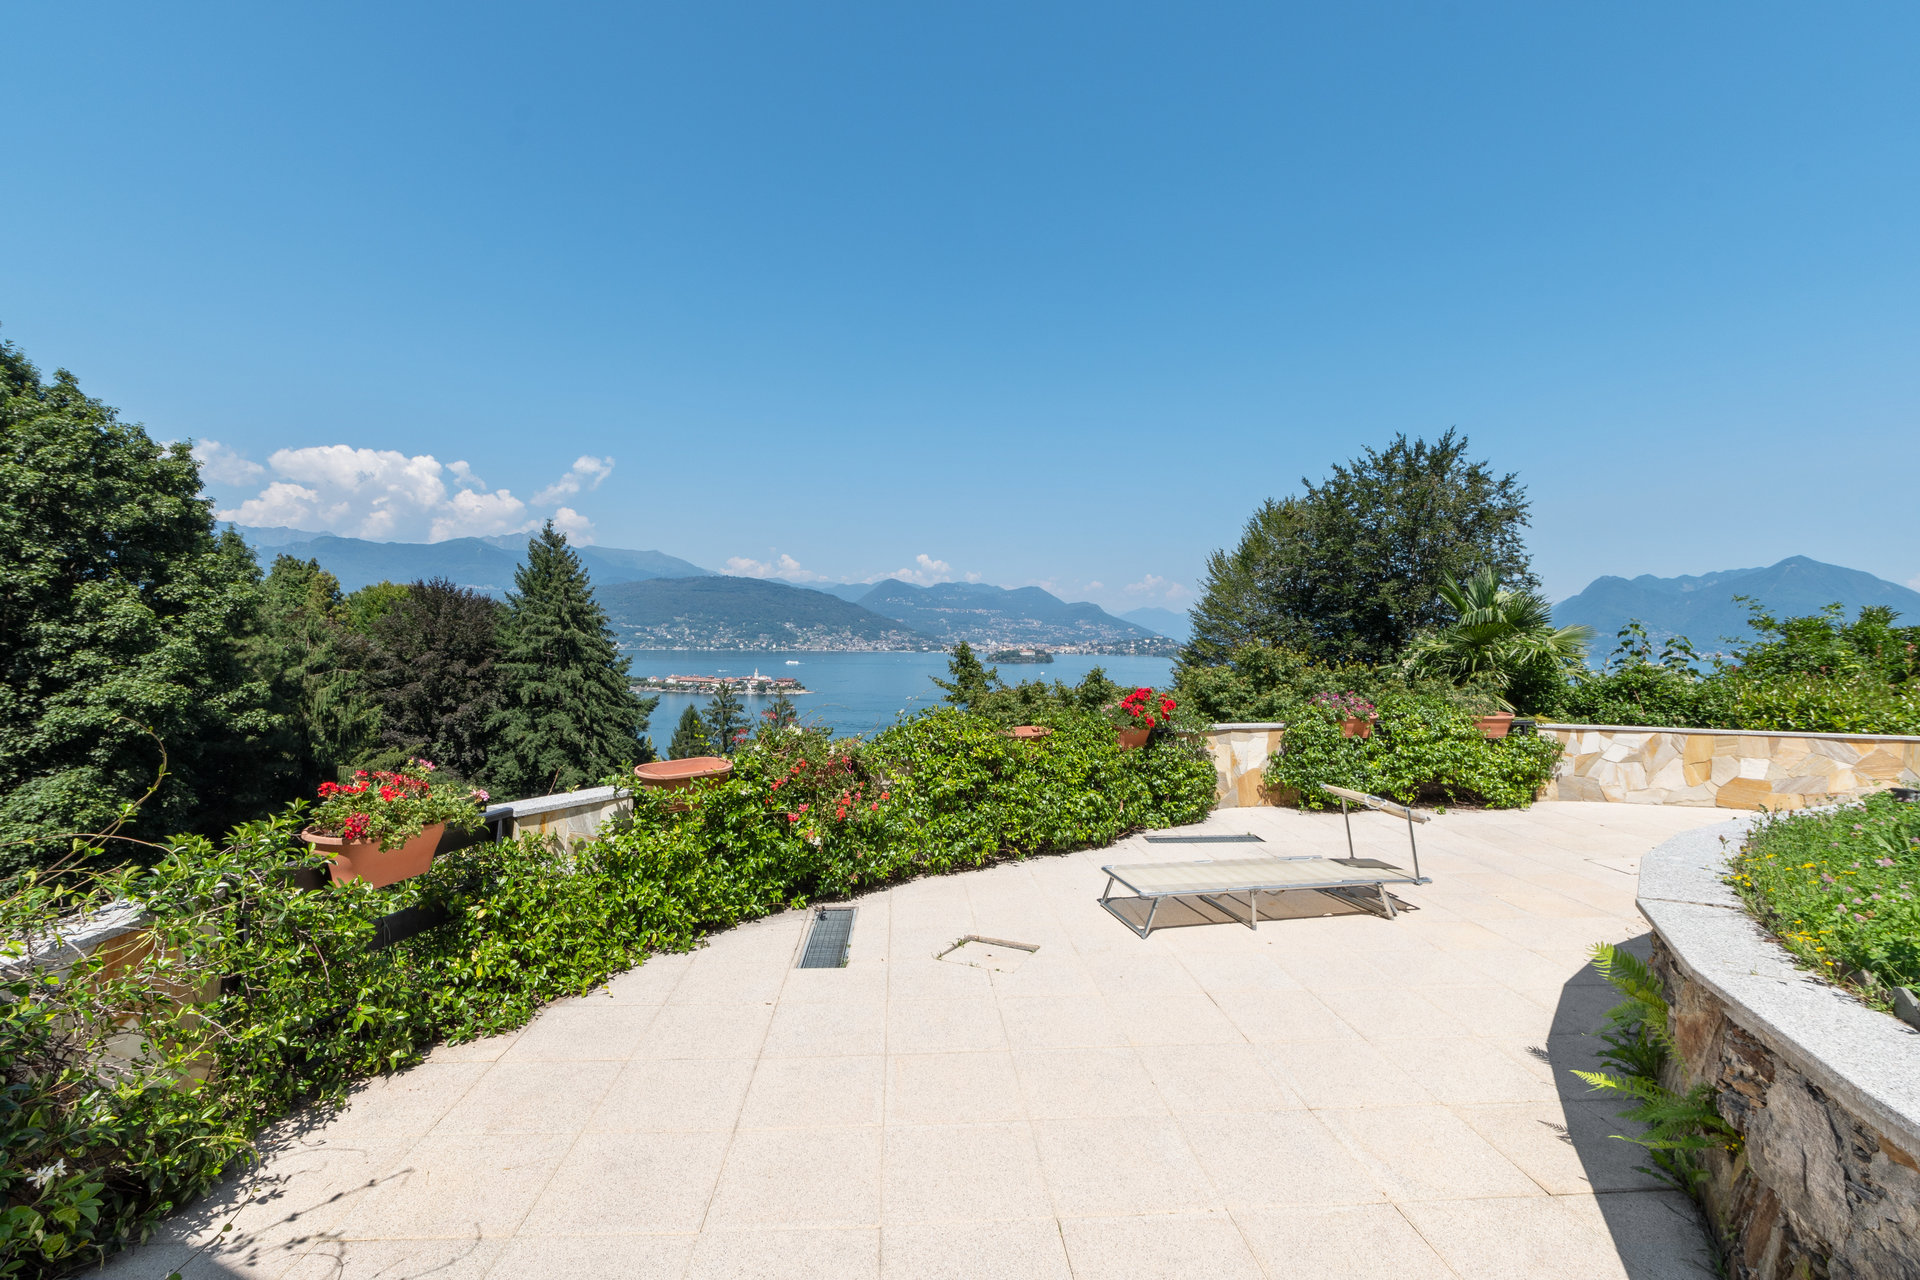 Villa for sale in Stresa with park and view on Borromean islands - external area